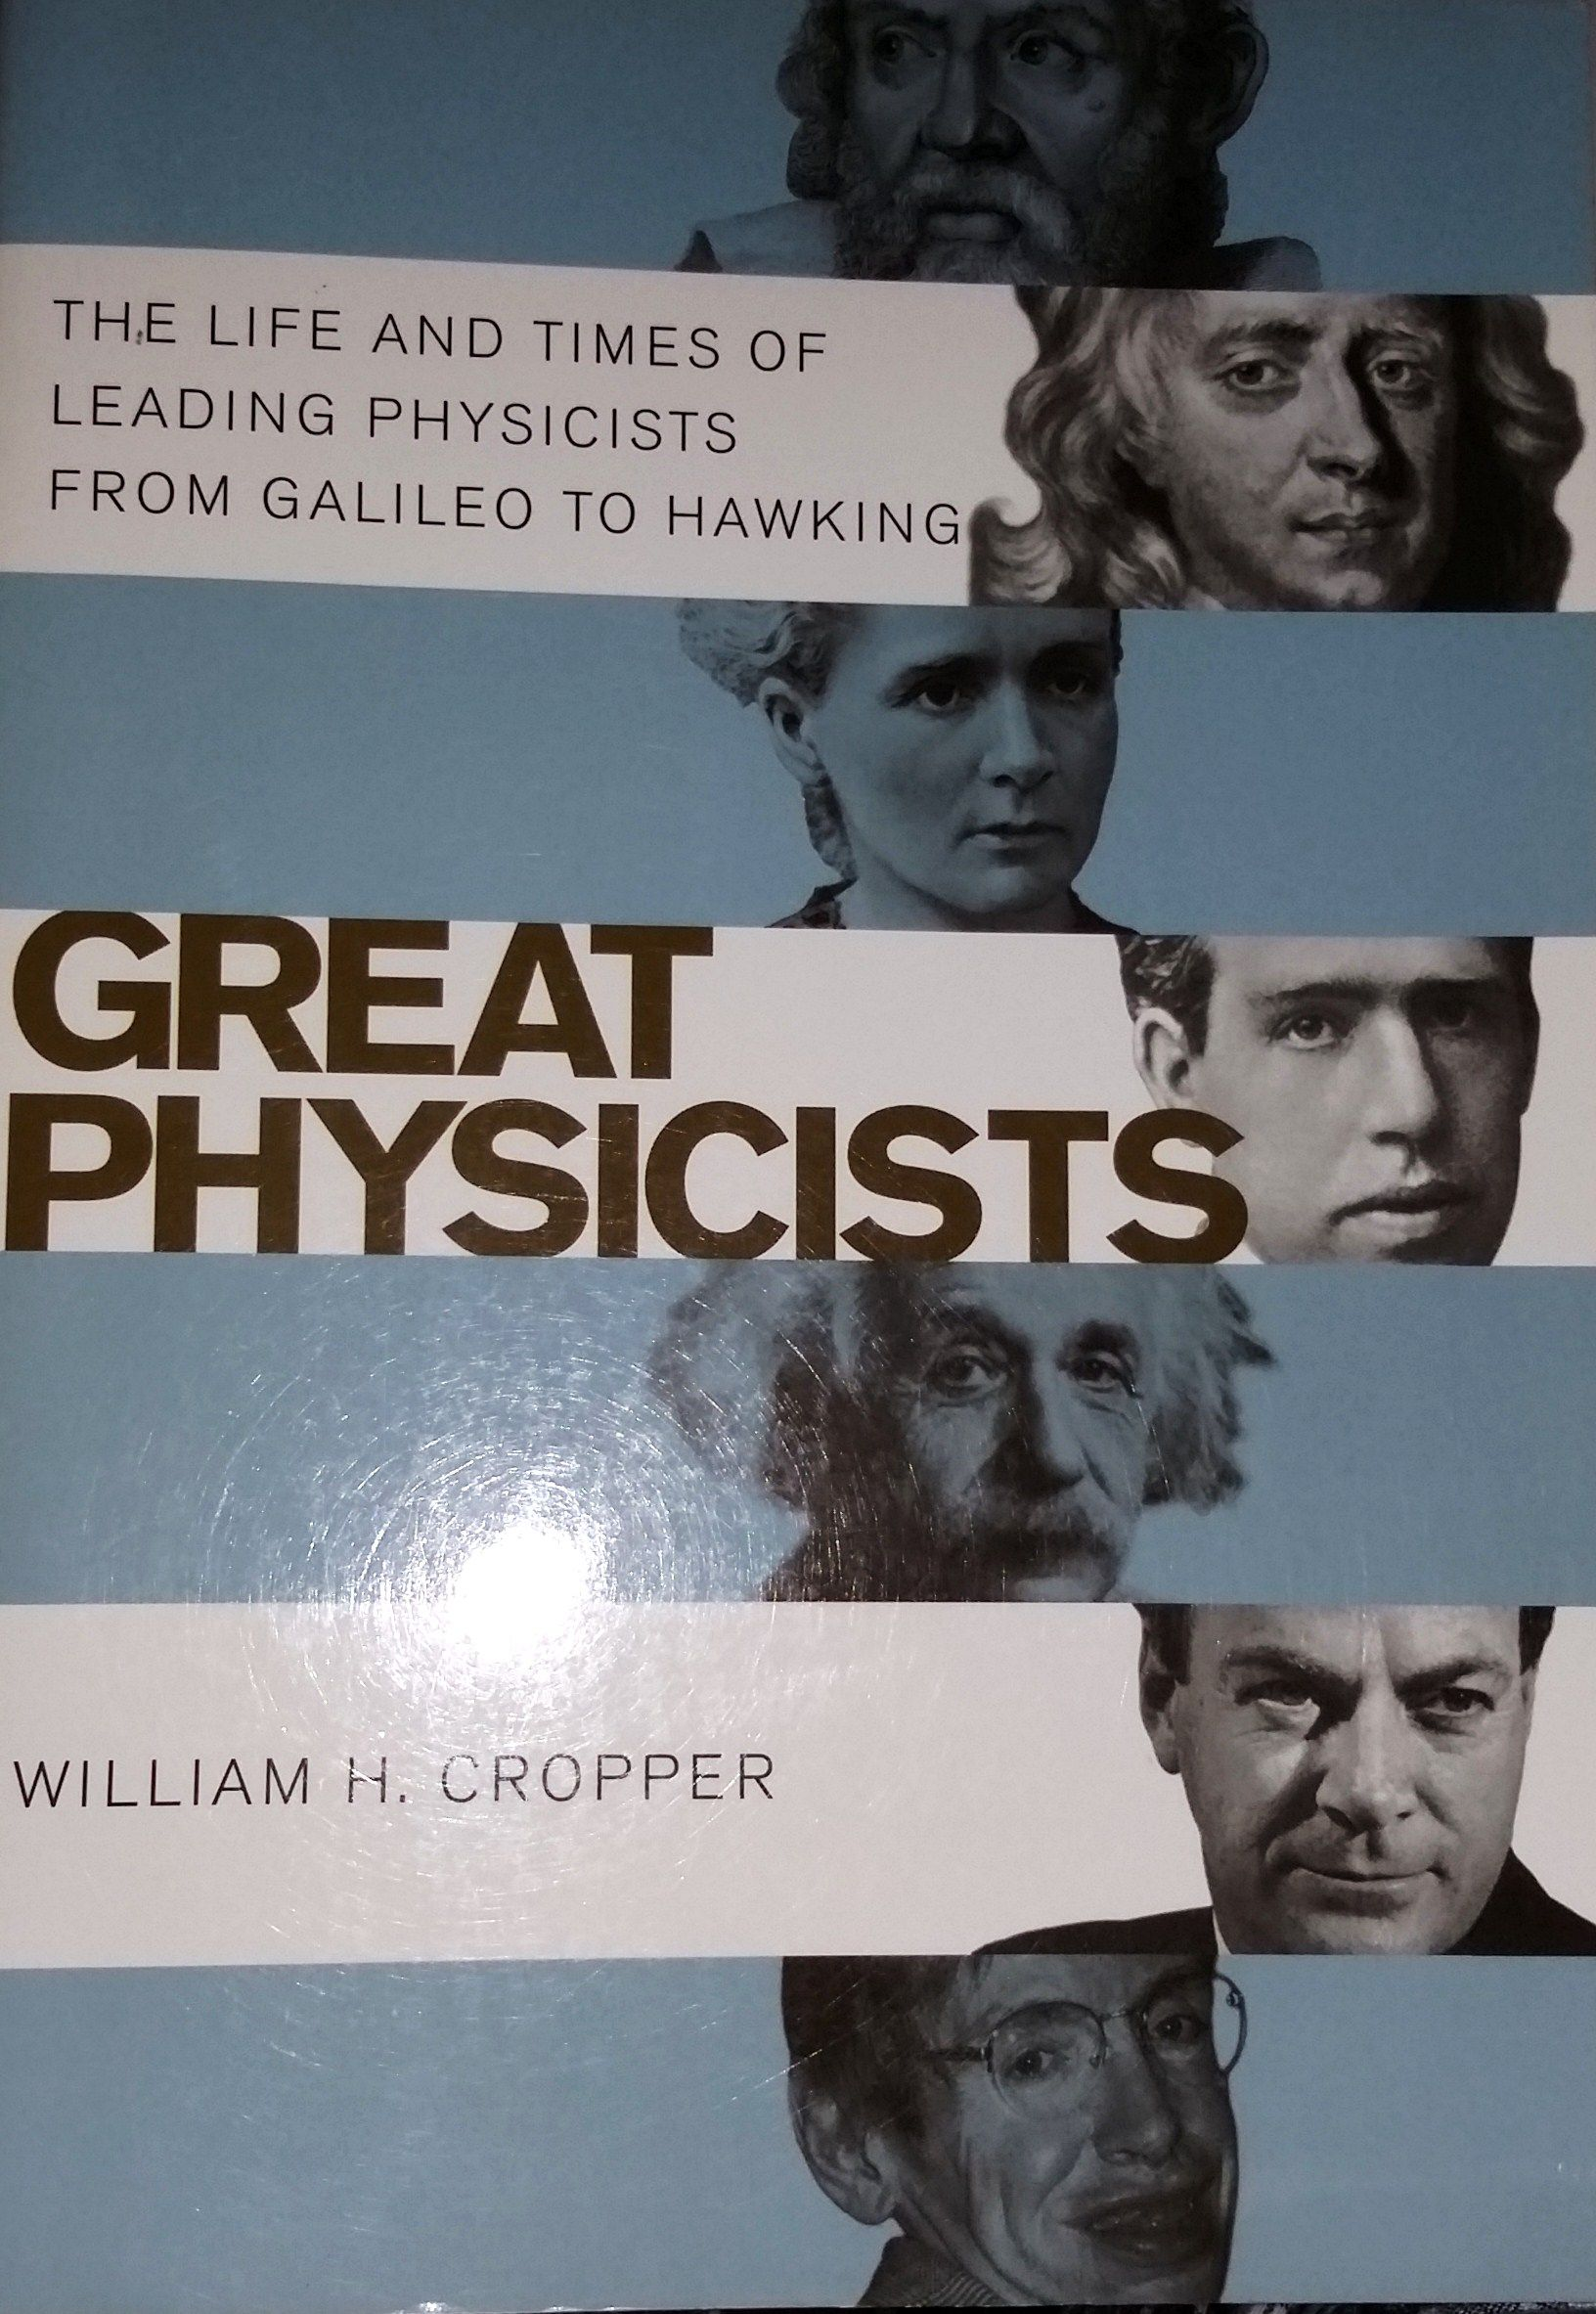 Great Physicists: The Life and Times of Leading Physicists from Galileo to Hawking  by William H. Cropper